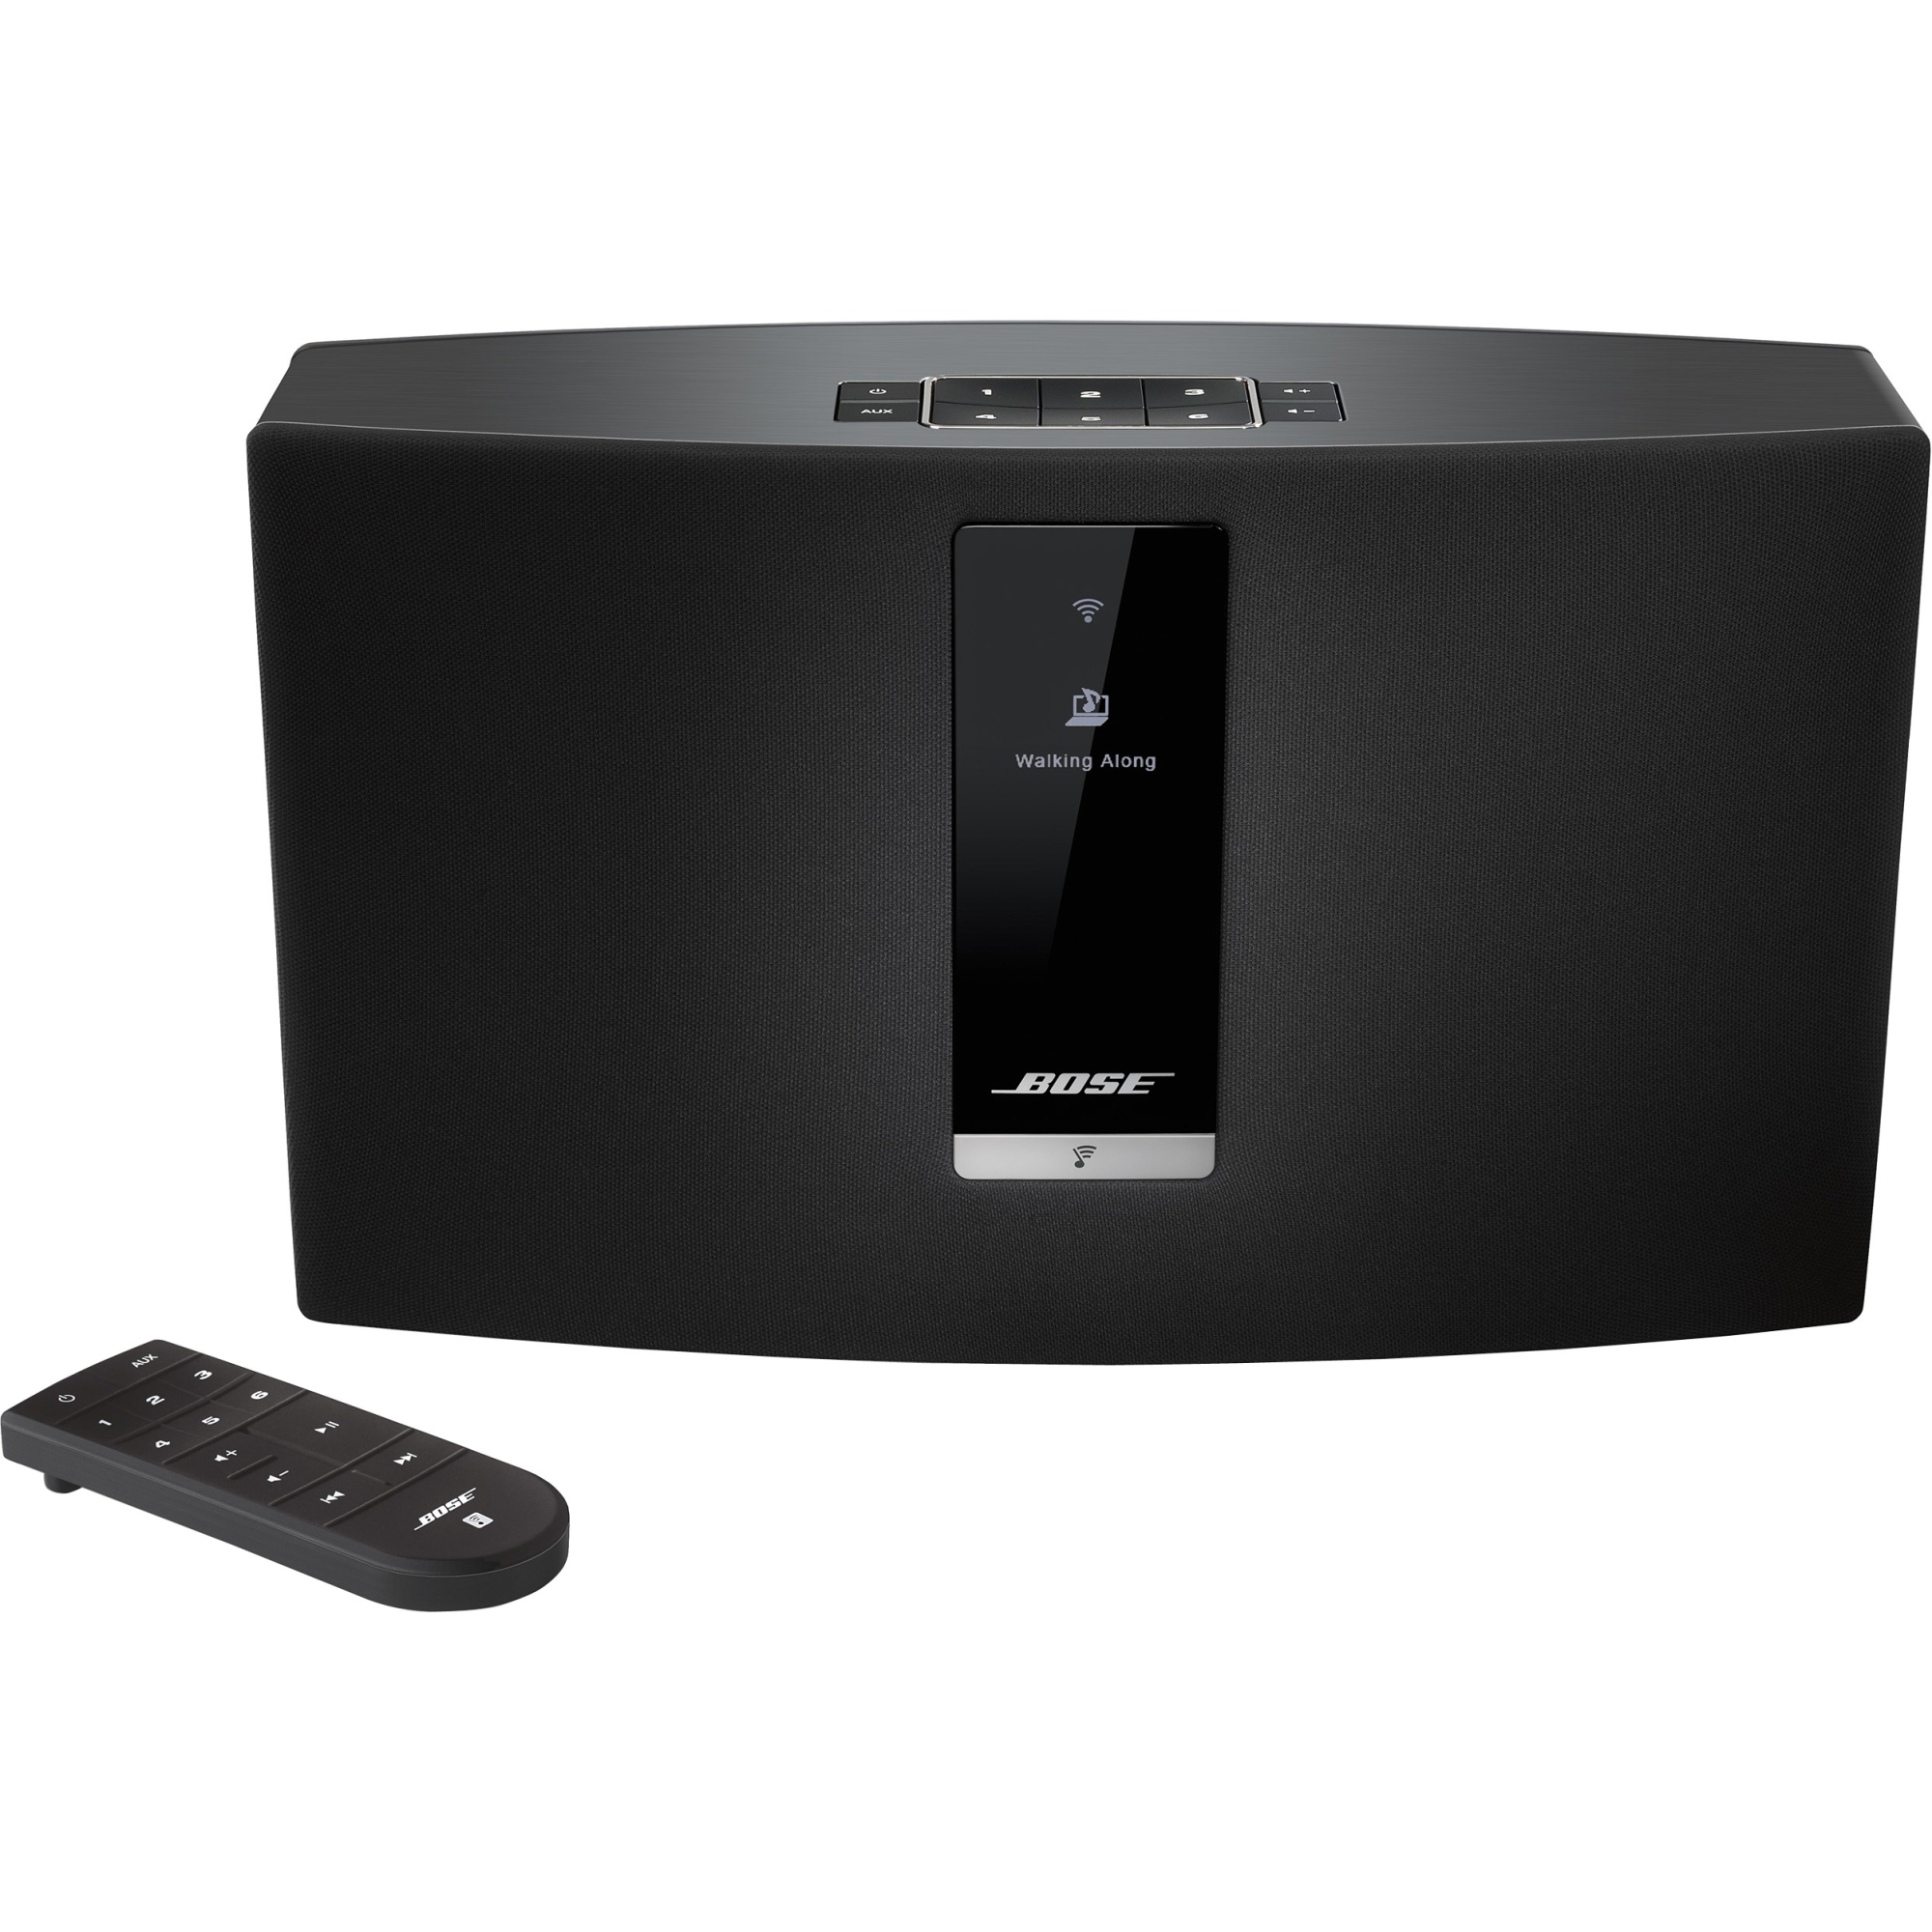 Bose SoundTouch 30 Series II Wi-Fi music system Black